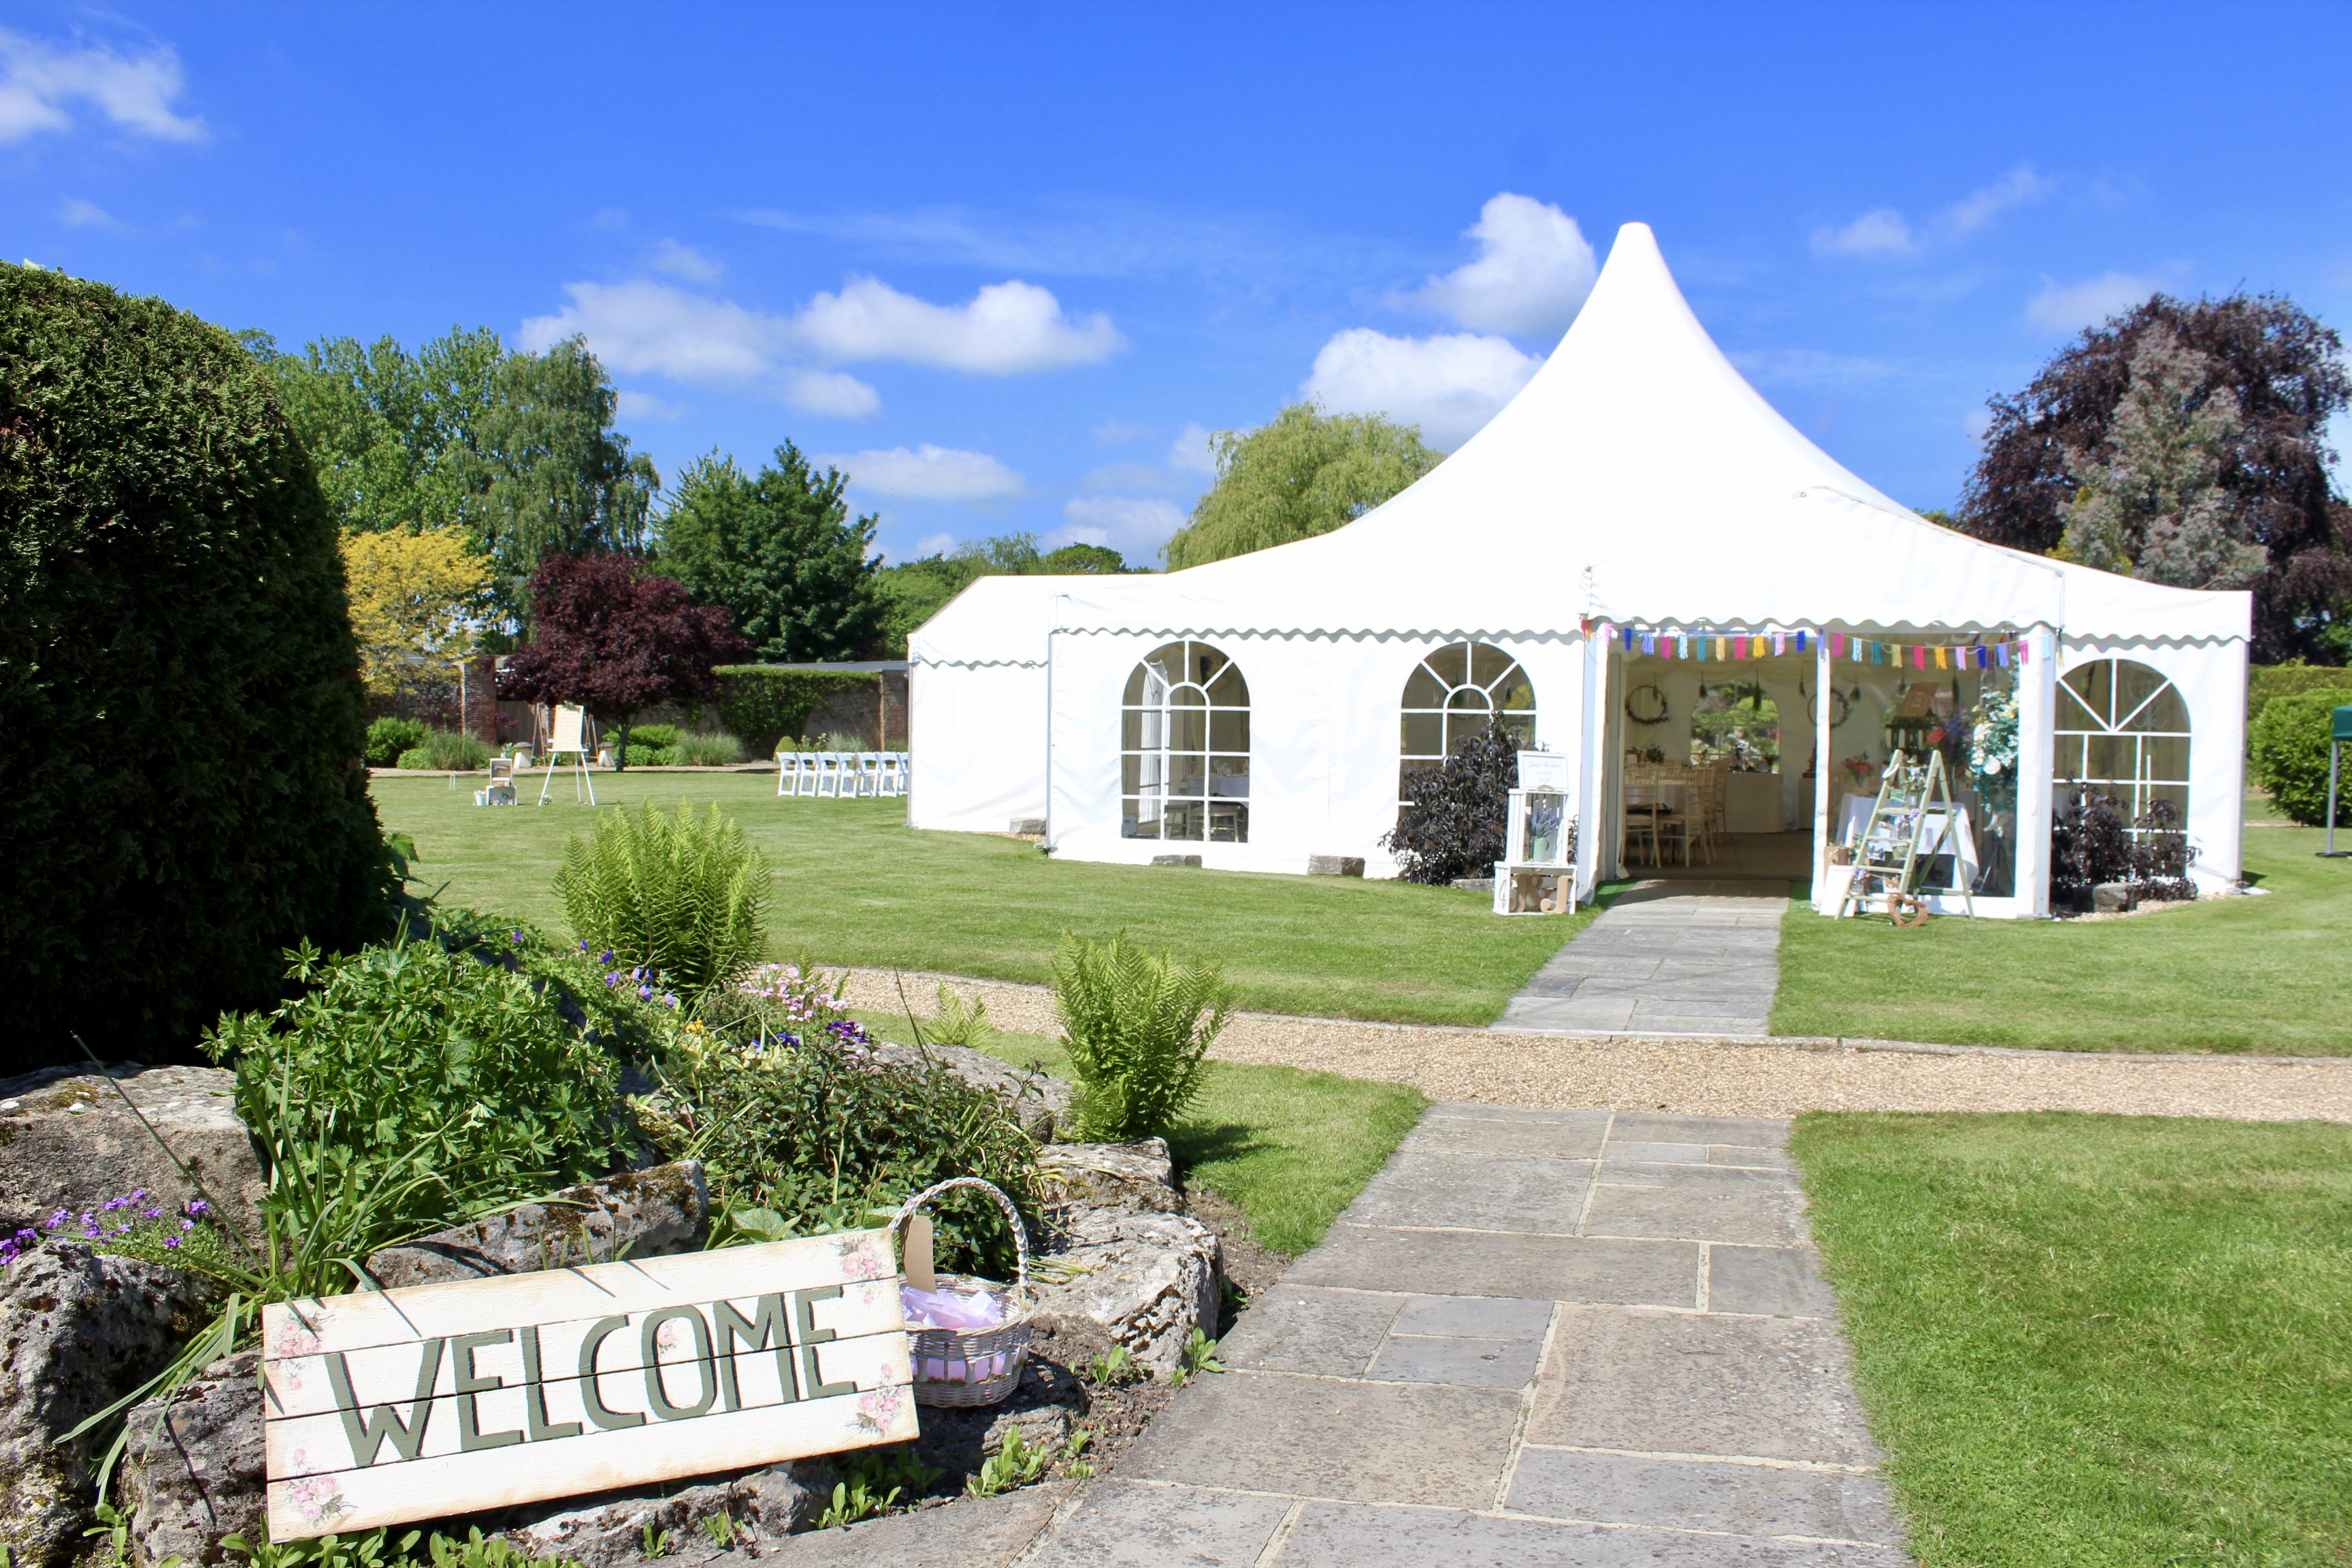 Pagoda marquee welcome